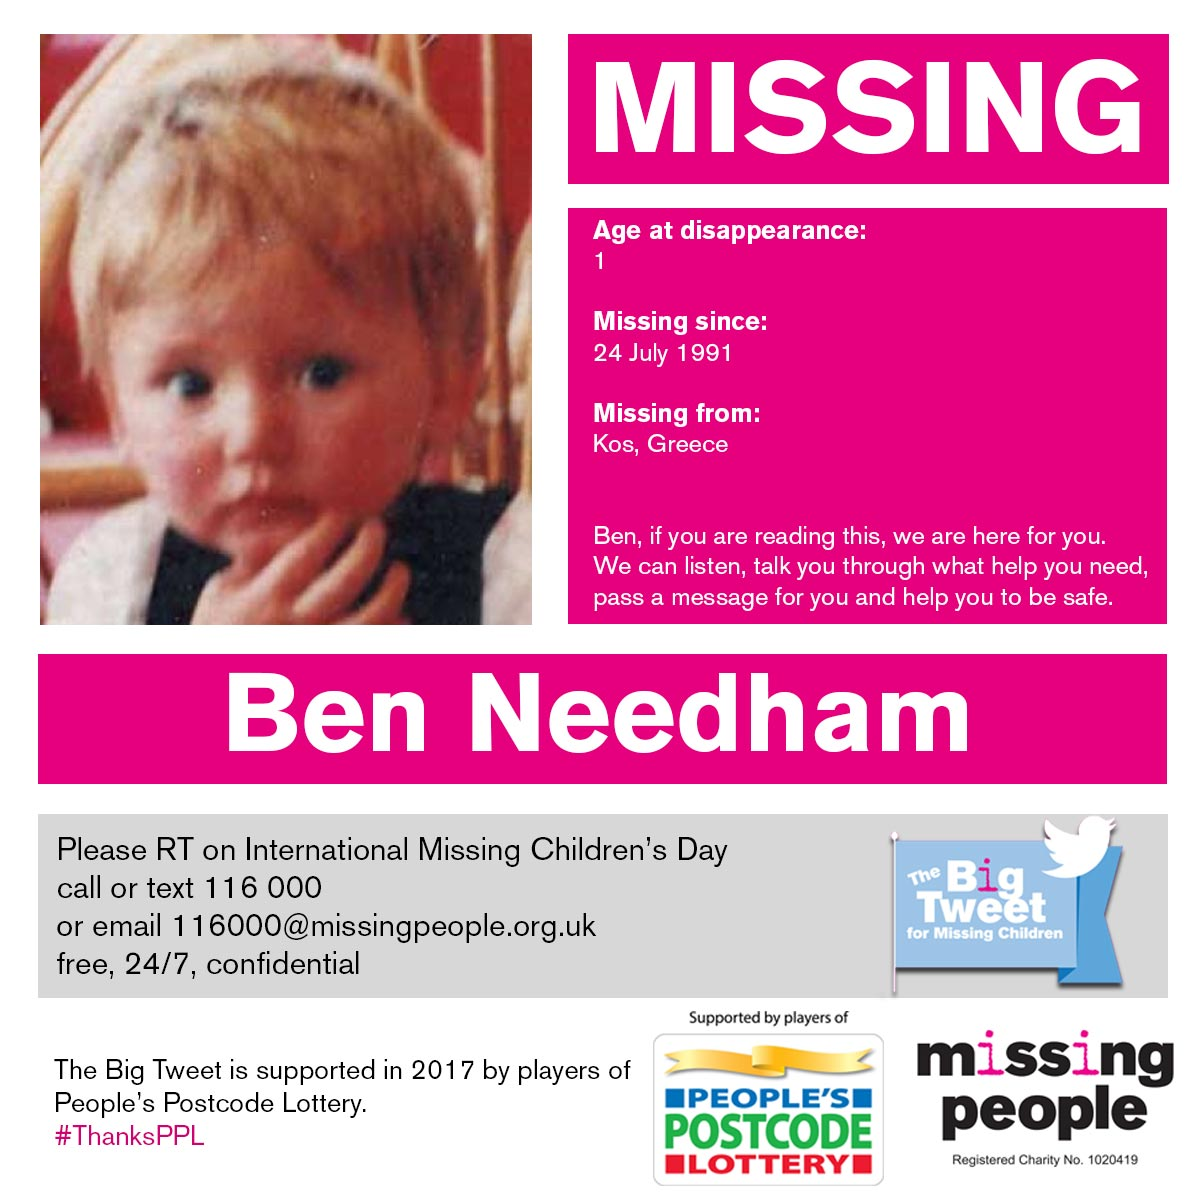 Ben went missing from #Kos #Greece in 1991 at the age of just 1. https://t.co/wKSFl5z23i #FindEveryChild #ThanksPPL